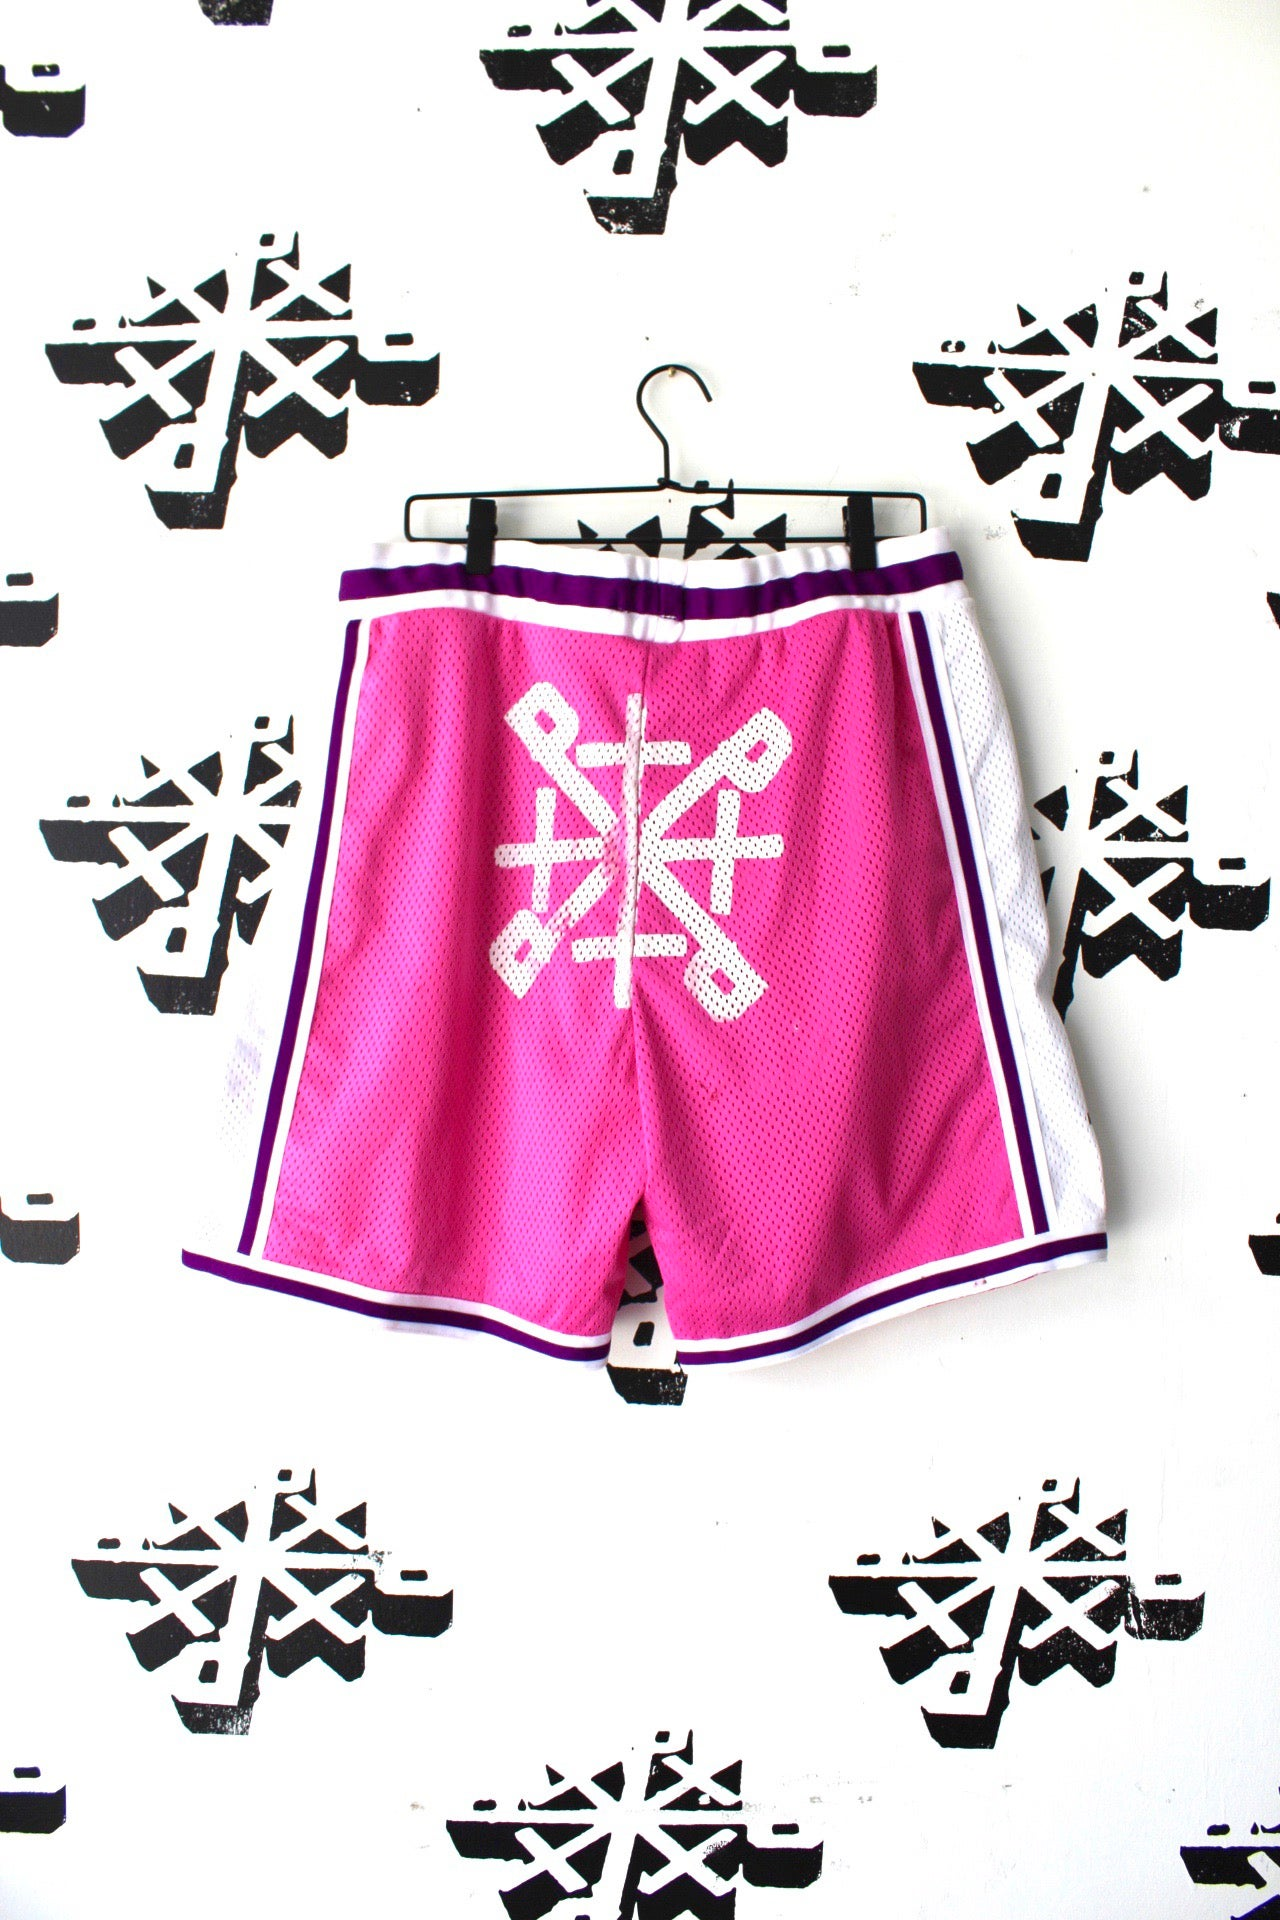 Image of beeen balling bball shorts in pink